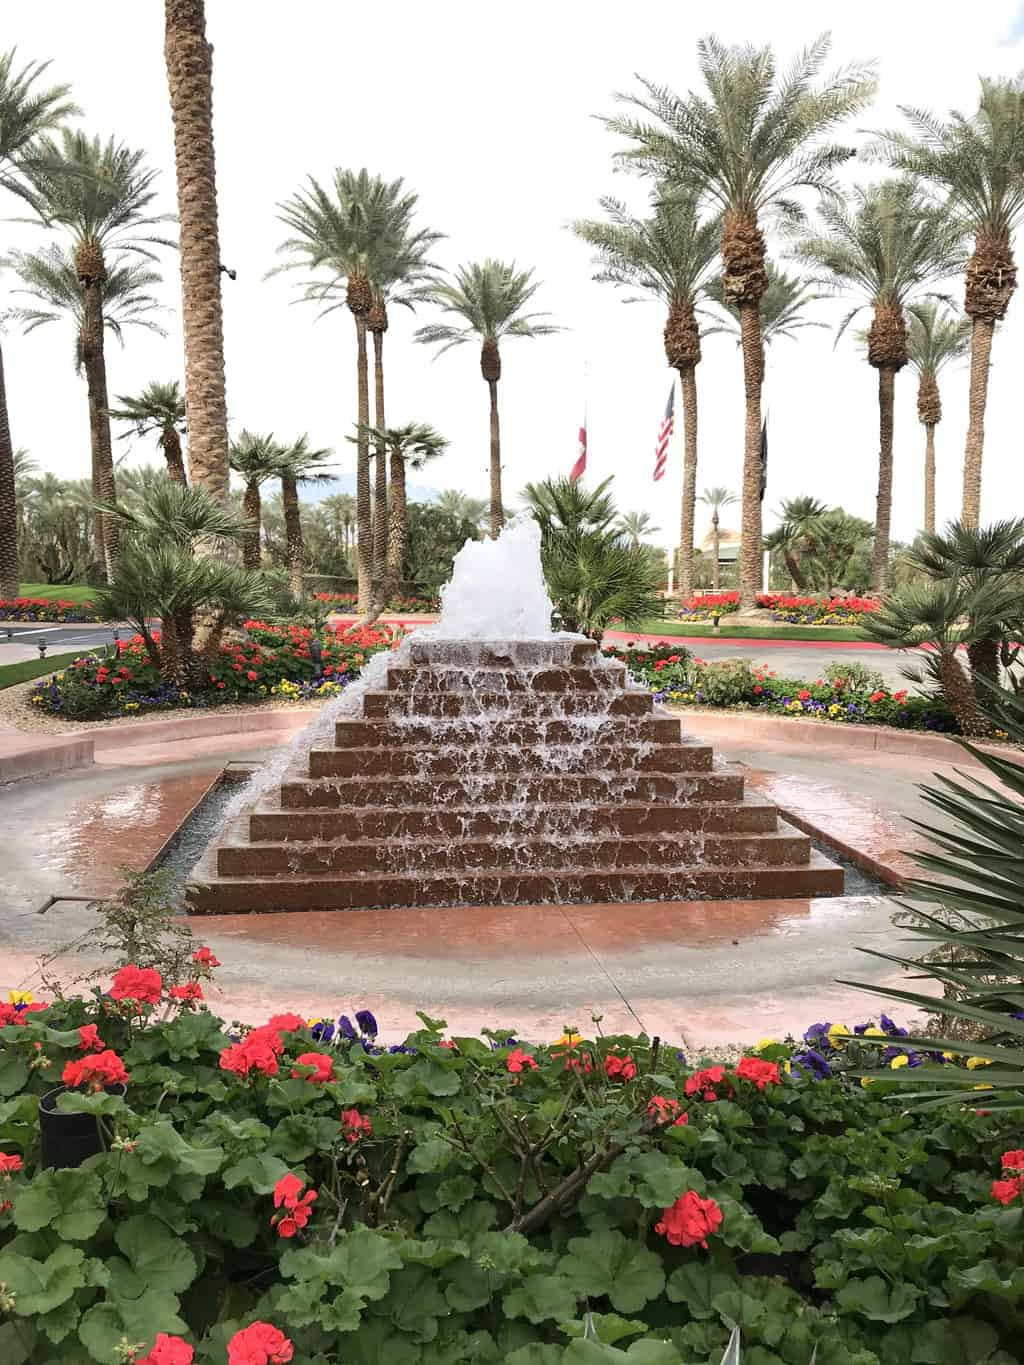 Are you planning a family vacation to Palm Springs, California? Book a room at the 5-star Renaissance Indian Wells Resort & Spa where kids are always welcome.